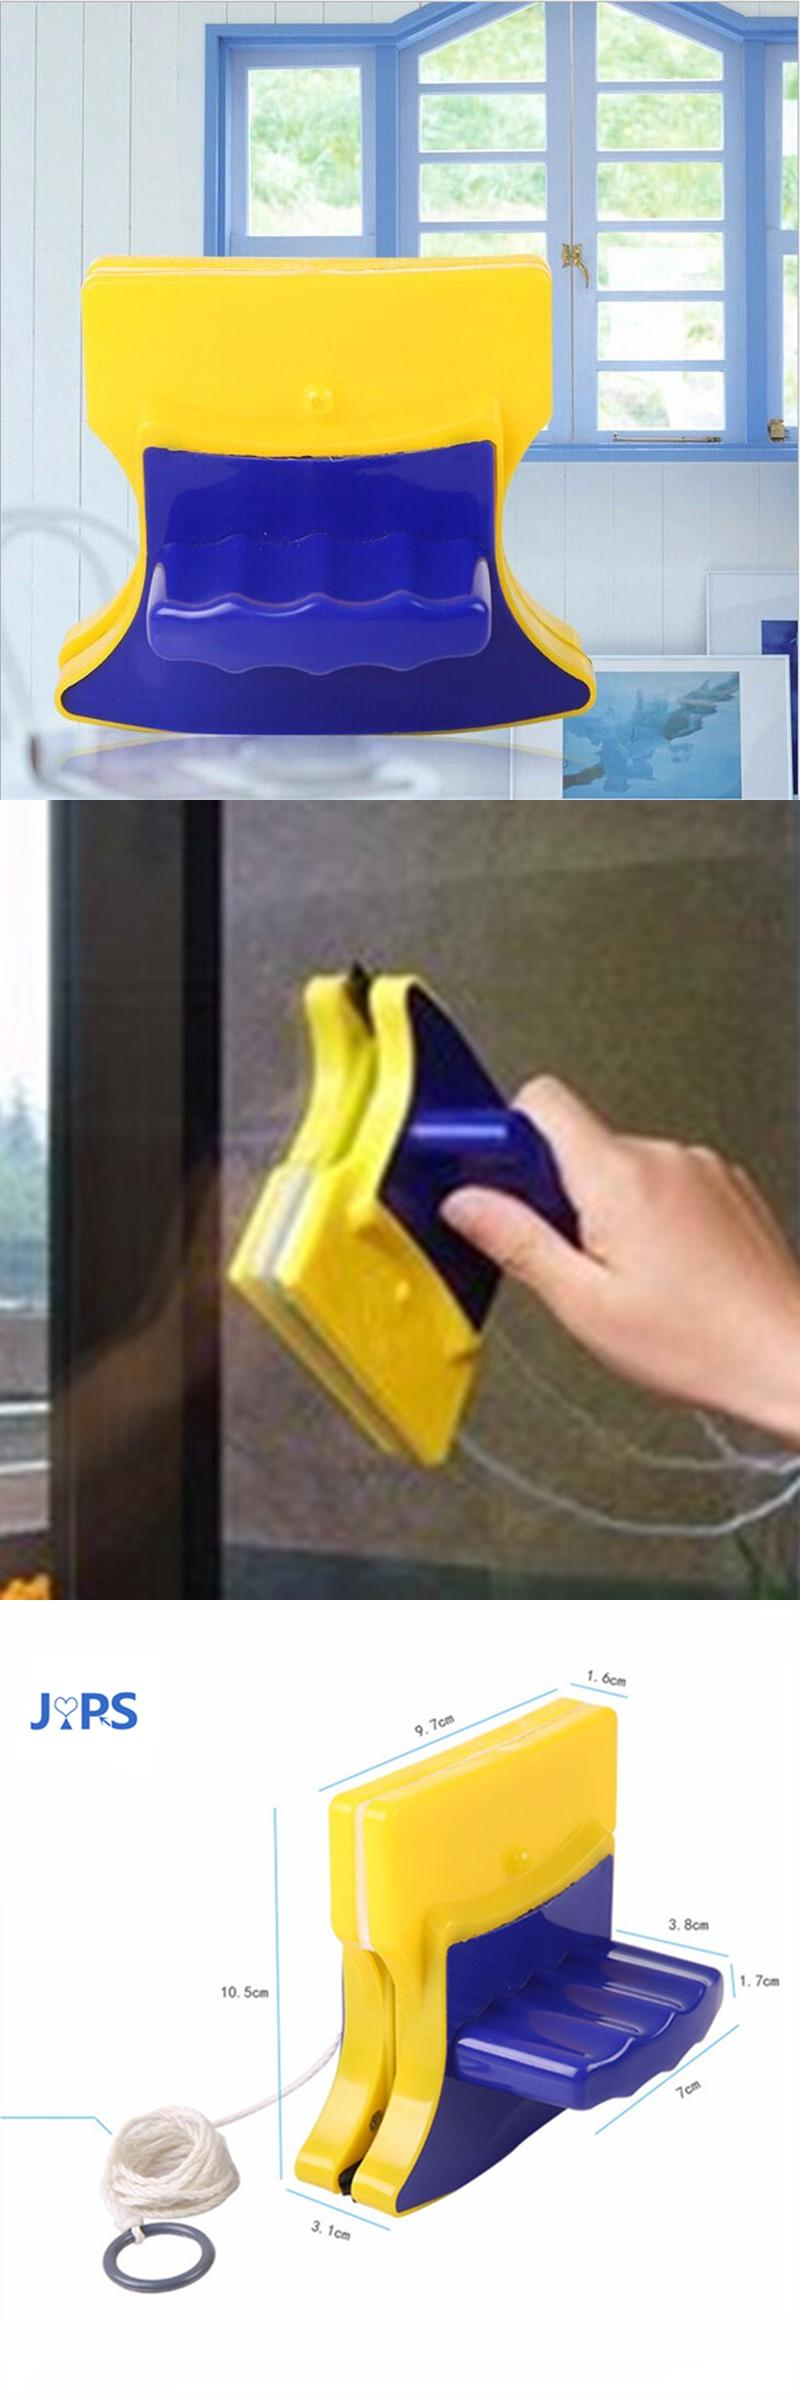 [Visit to Buy] Magnetic brush for washing windows Household Double-sided window wizard cleaning tool magnetic window cleaner #Advertisement